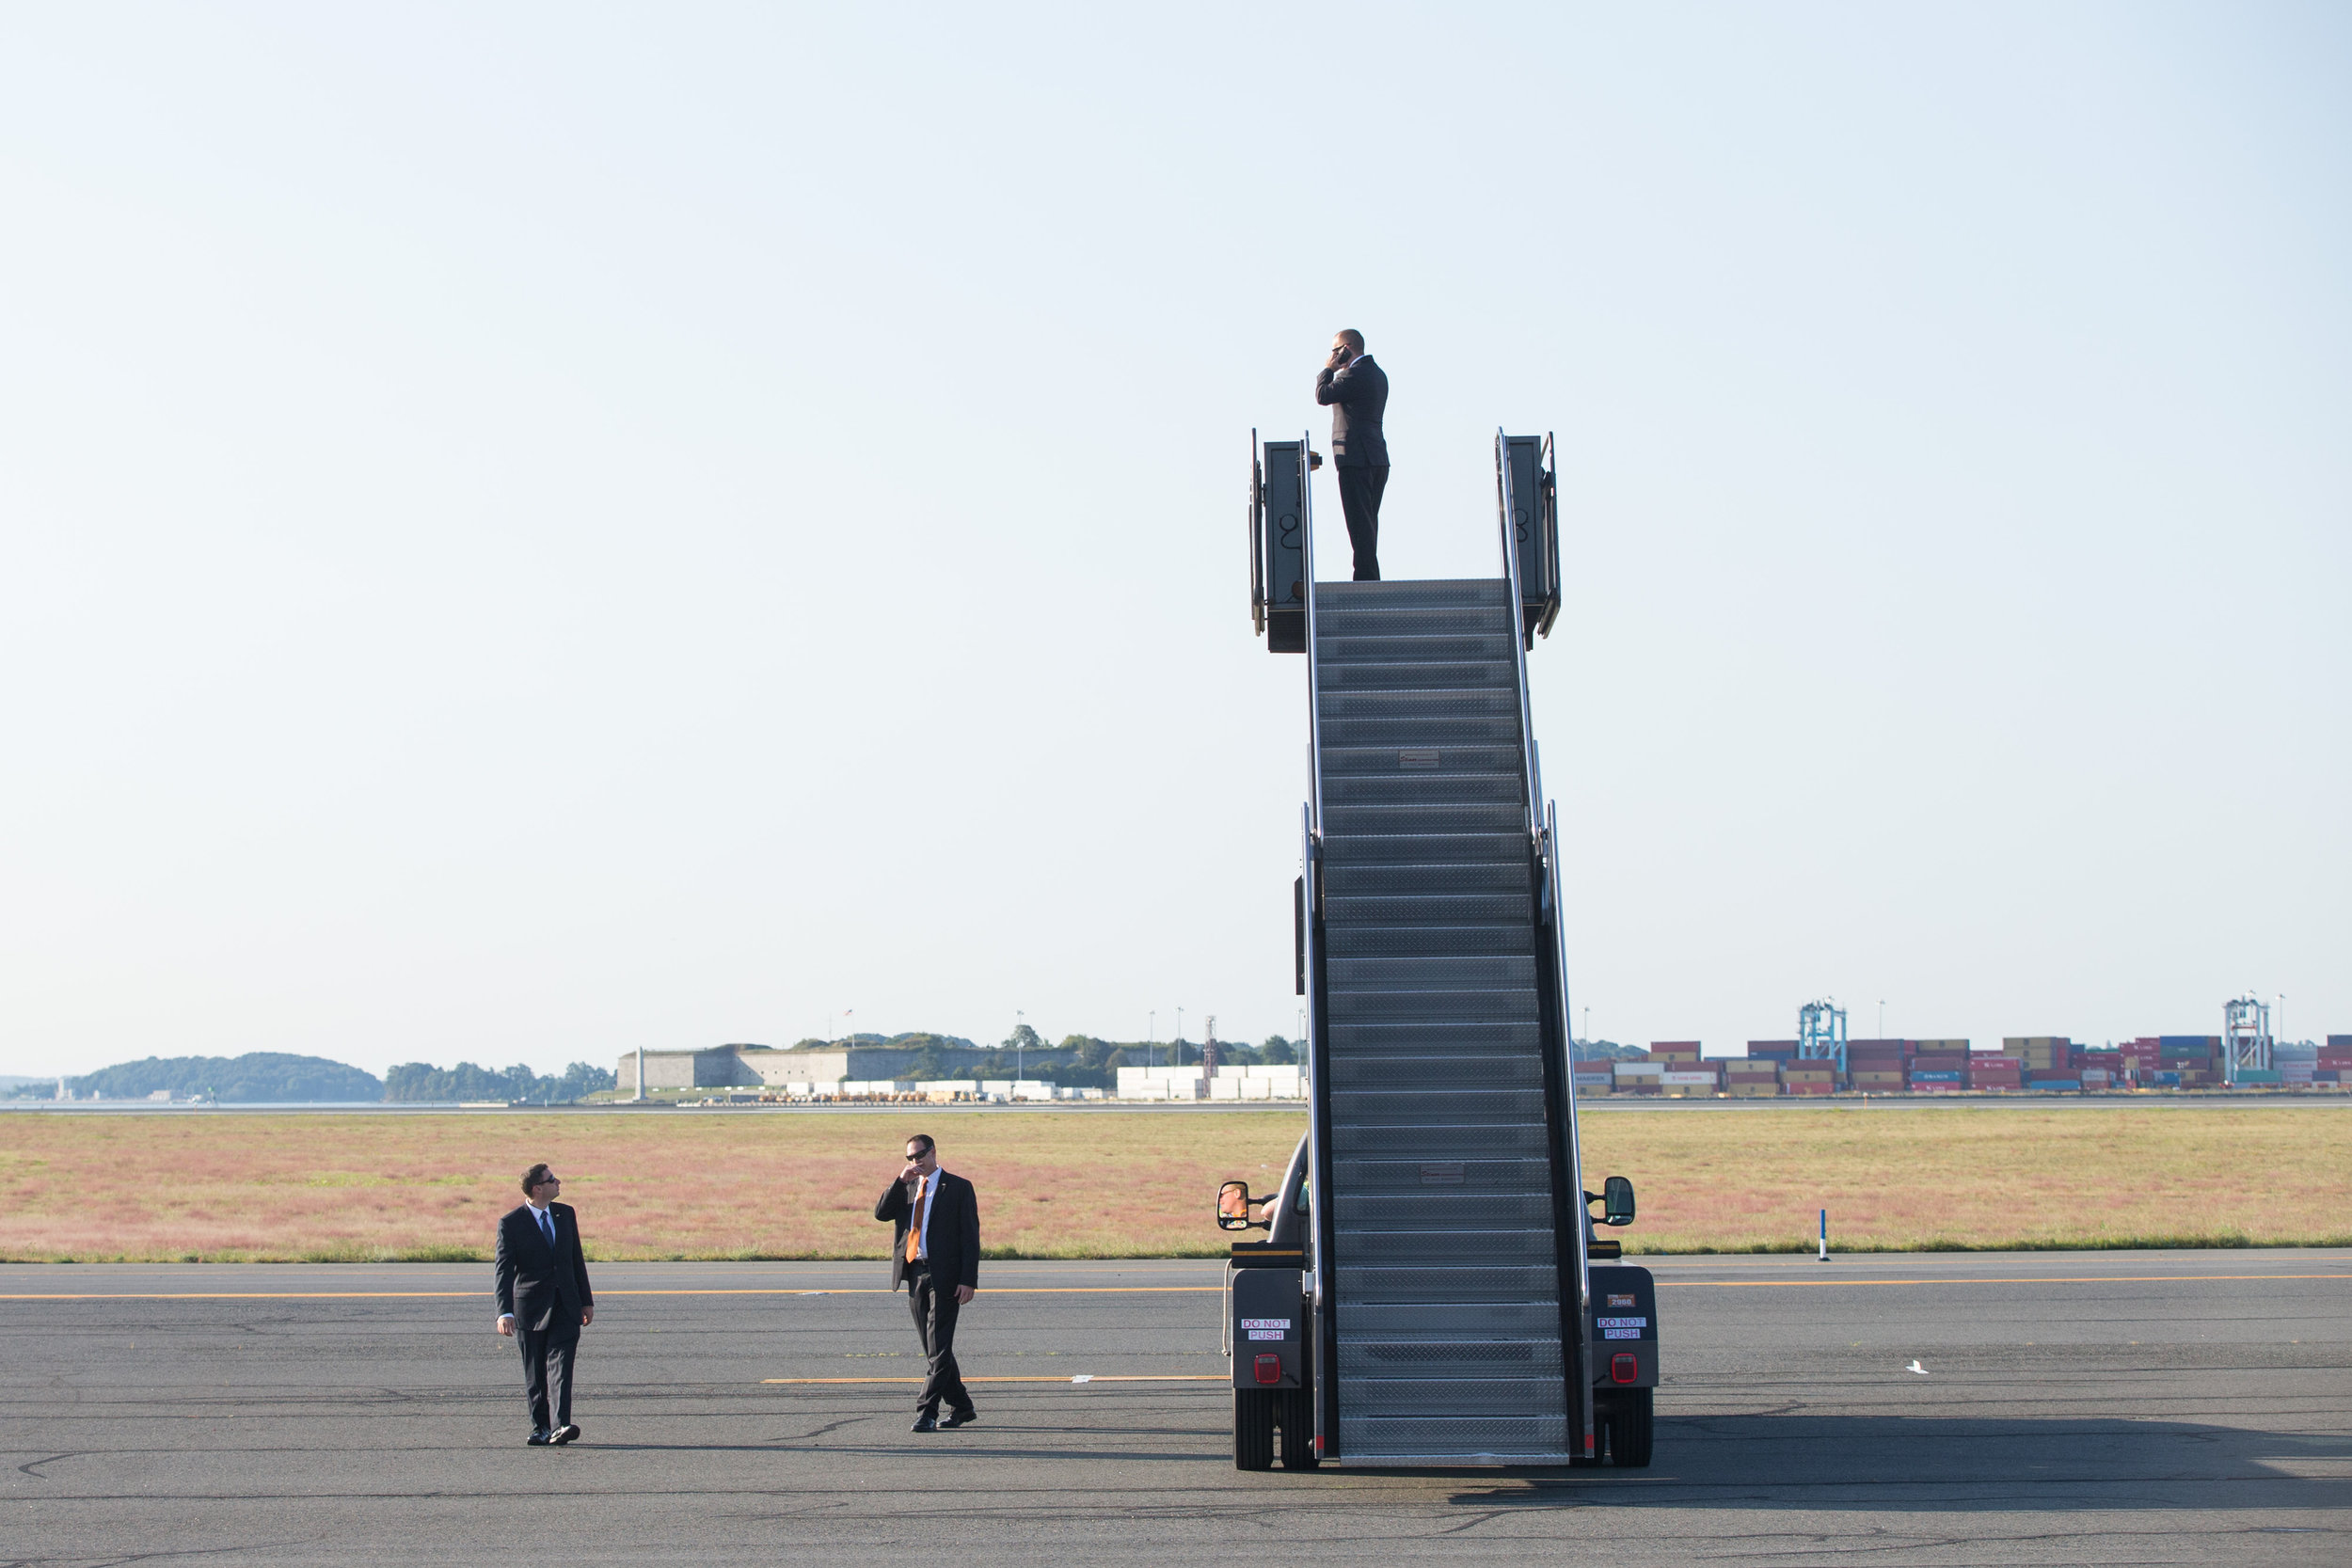 Secret Service agents prepare of the arrival of U.S. President Barack Obama at Logan International Airport in Boston, Massachusetts, September 7, 2015.